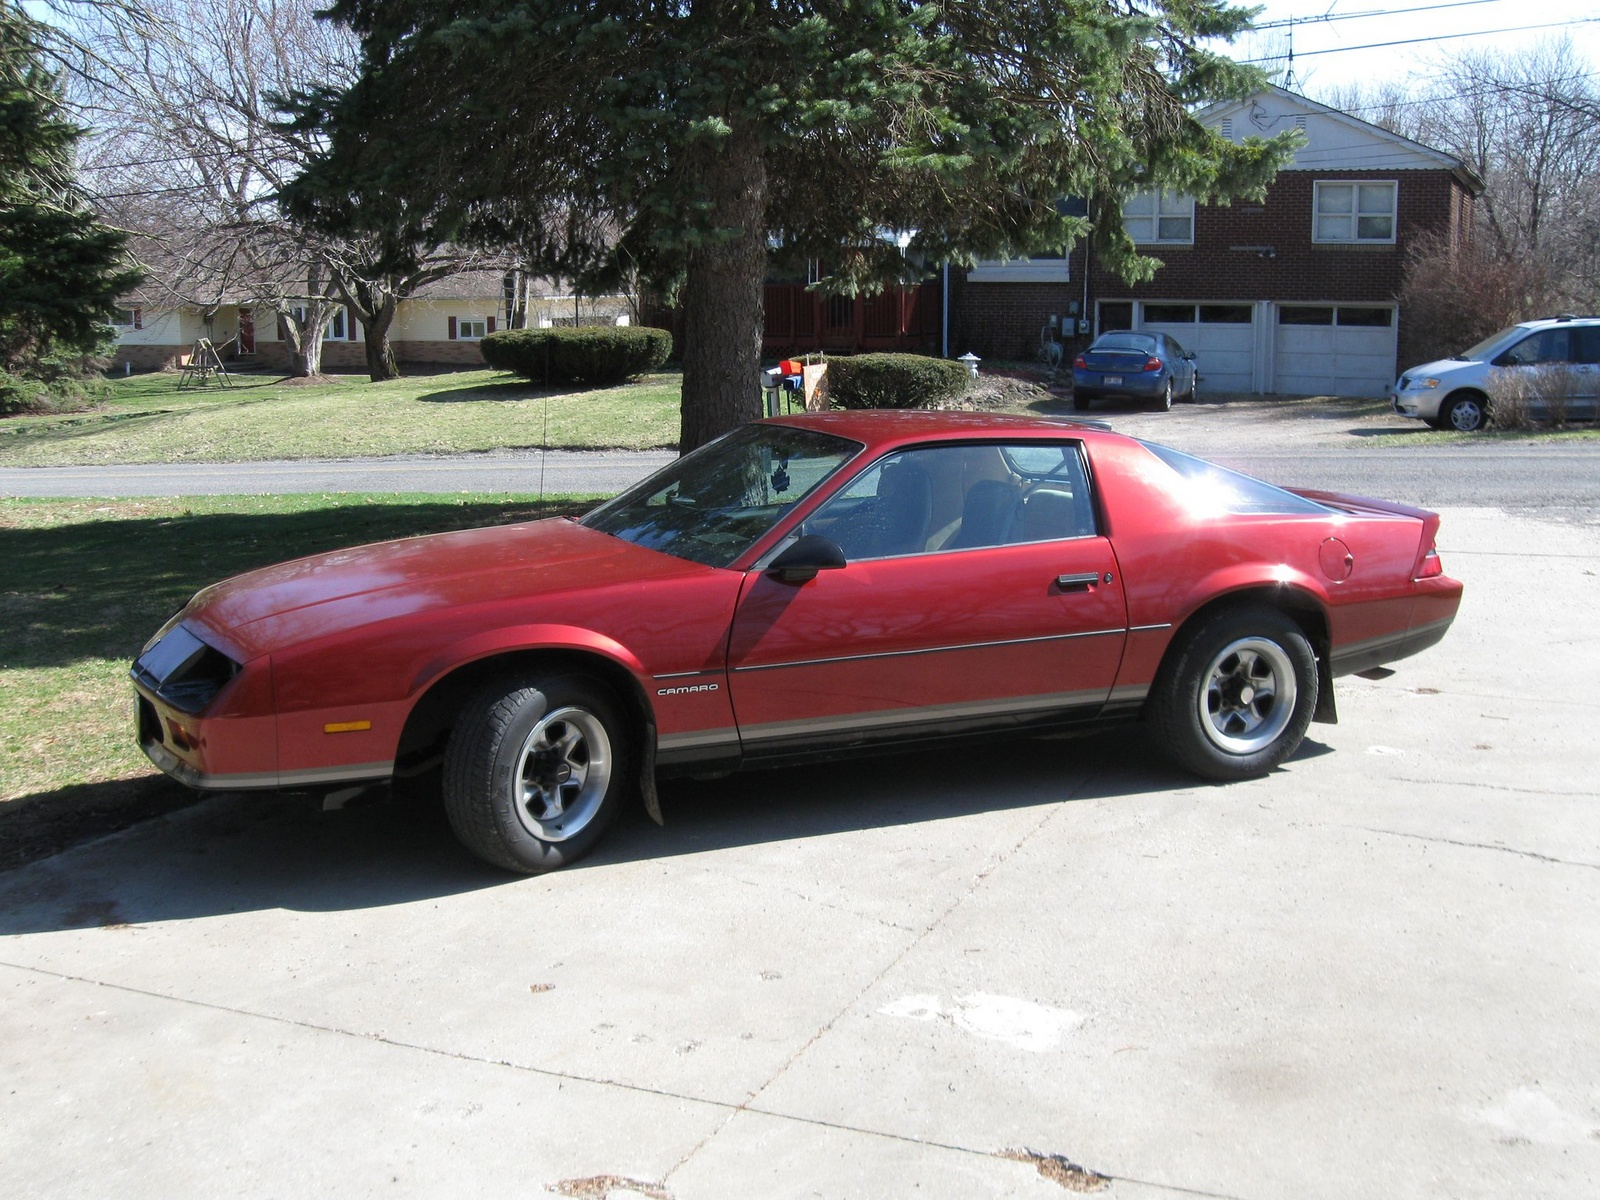 1986 Chevrolet Camaro Pictures C3649 likewise 2x Oem Valeo Hid D1s D3s Projectors Xenon Light Projector Set Retrofit Lenses besides 2015 2016 Mustang Carbon Fiber Gt350r Spoiler in addition Gaiola Para Trilha additionally 52 993Q. on 98 chevy camaro